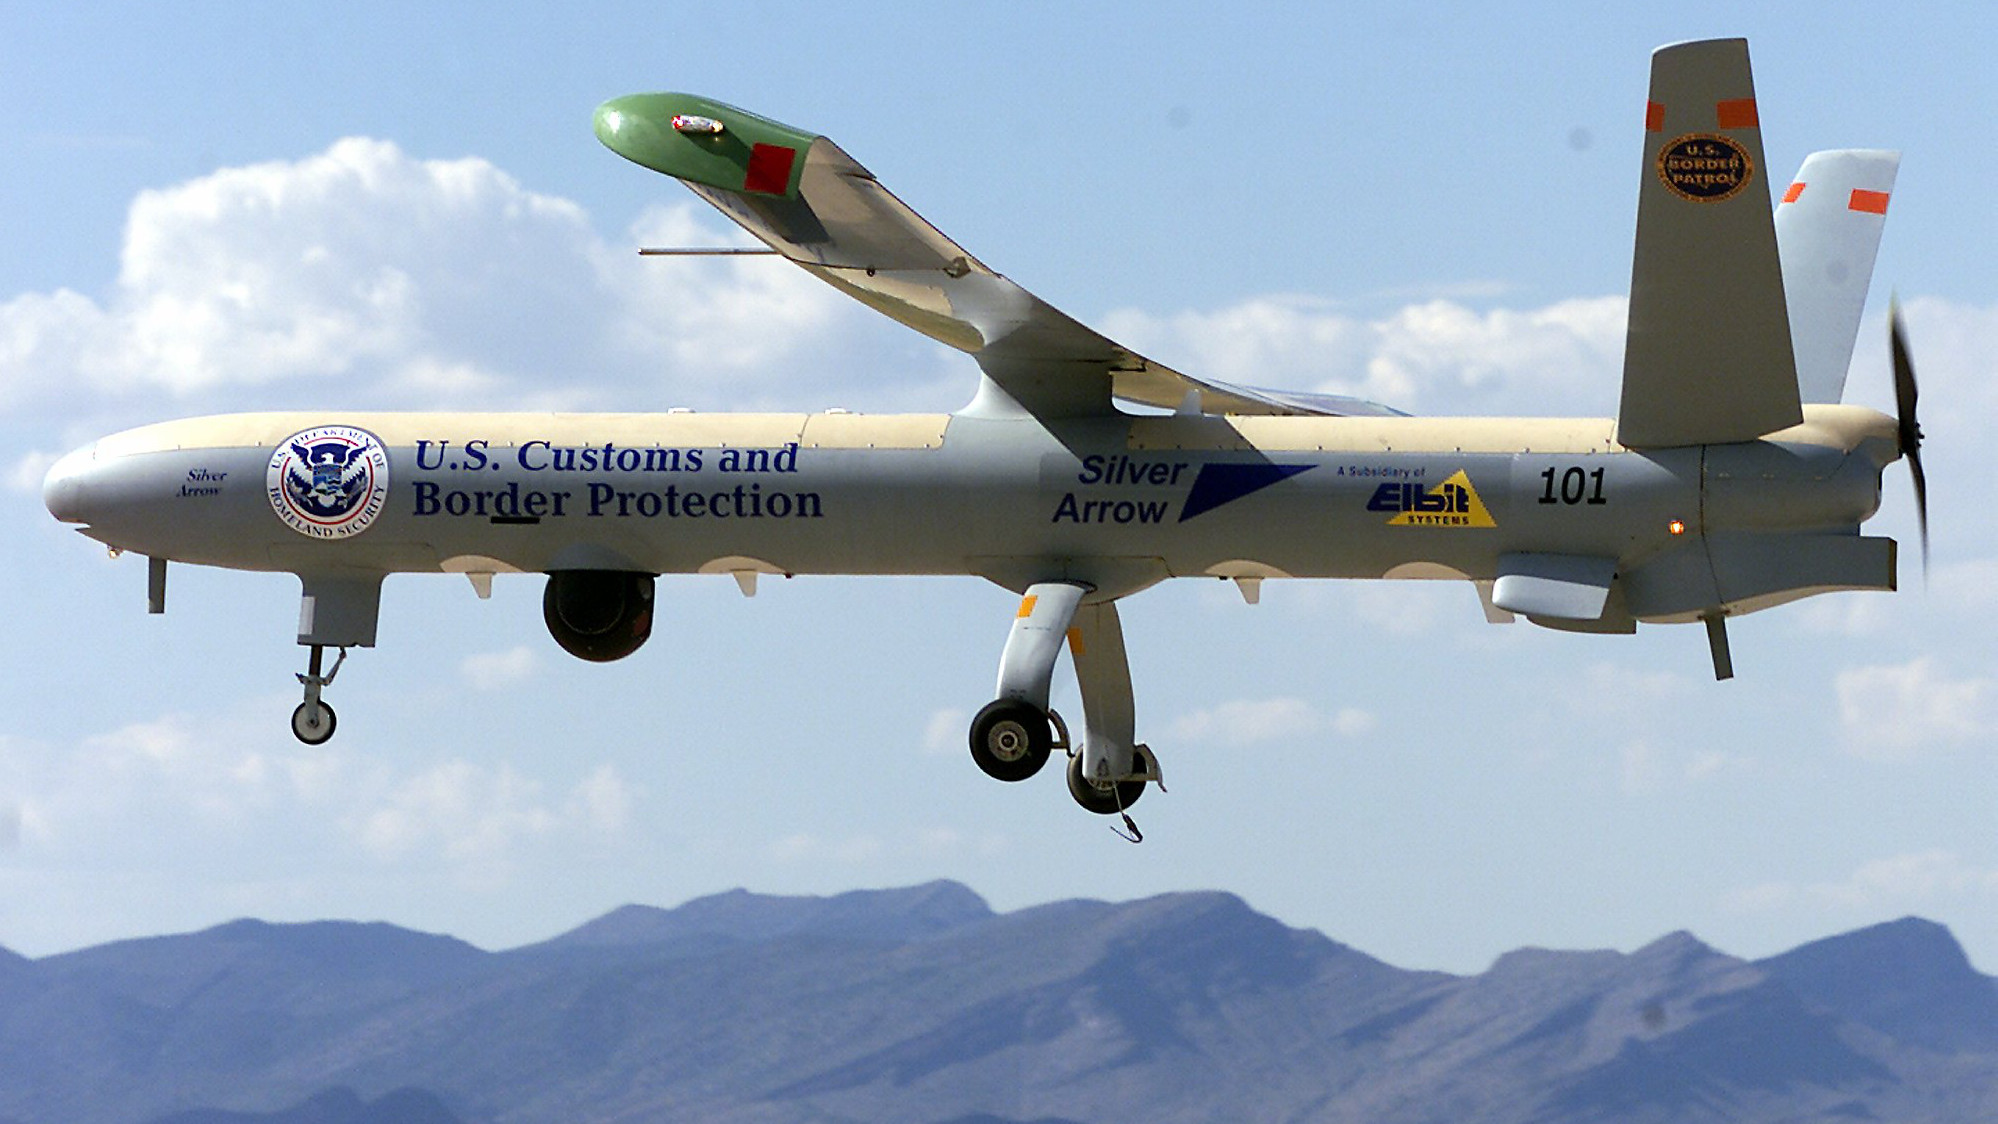 The U.S. Border Patrol's new unmanned-aerial-vehicle or UAV is shown in flight at Fort Huachuca, Ariz., Friday, June 25, 2004. The unmanned drone, launched by the Border Patrol on Friday, uses thermal and night-vision equipment to help agents spot illegal immigrants trying to cross the desert into the United States.